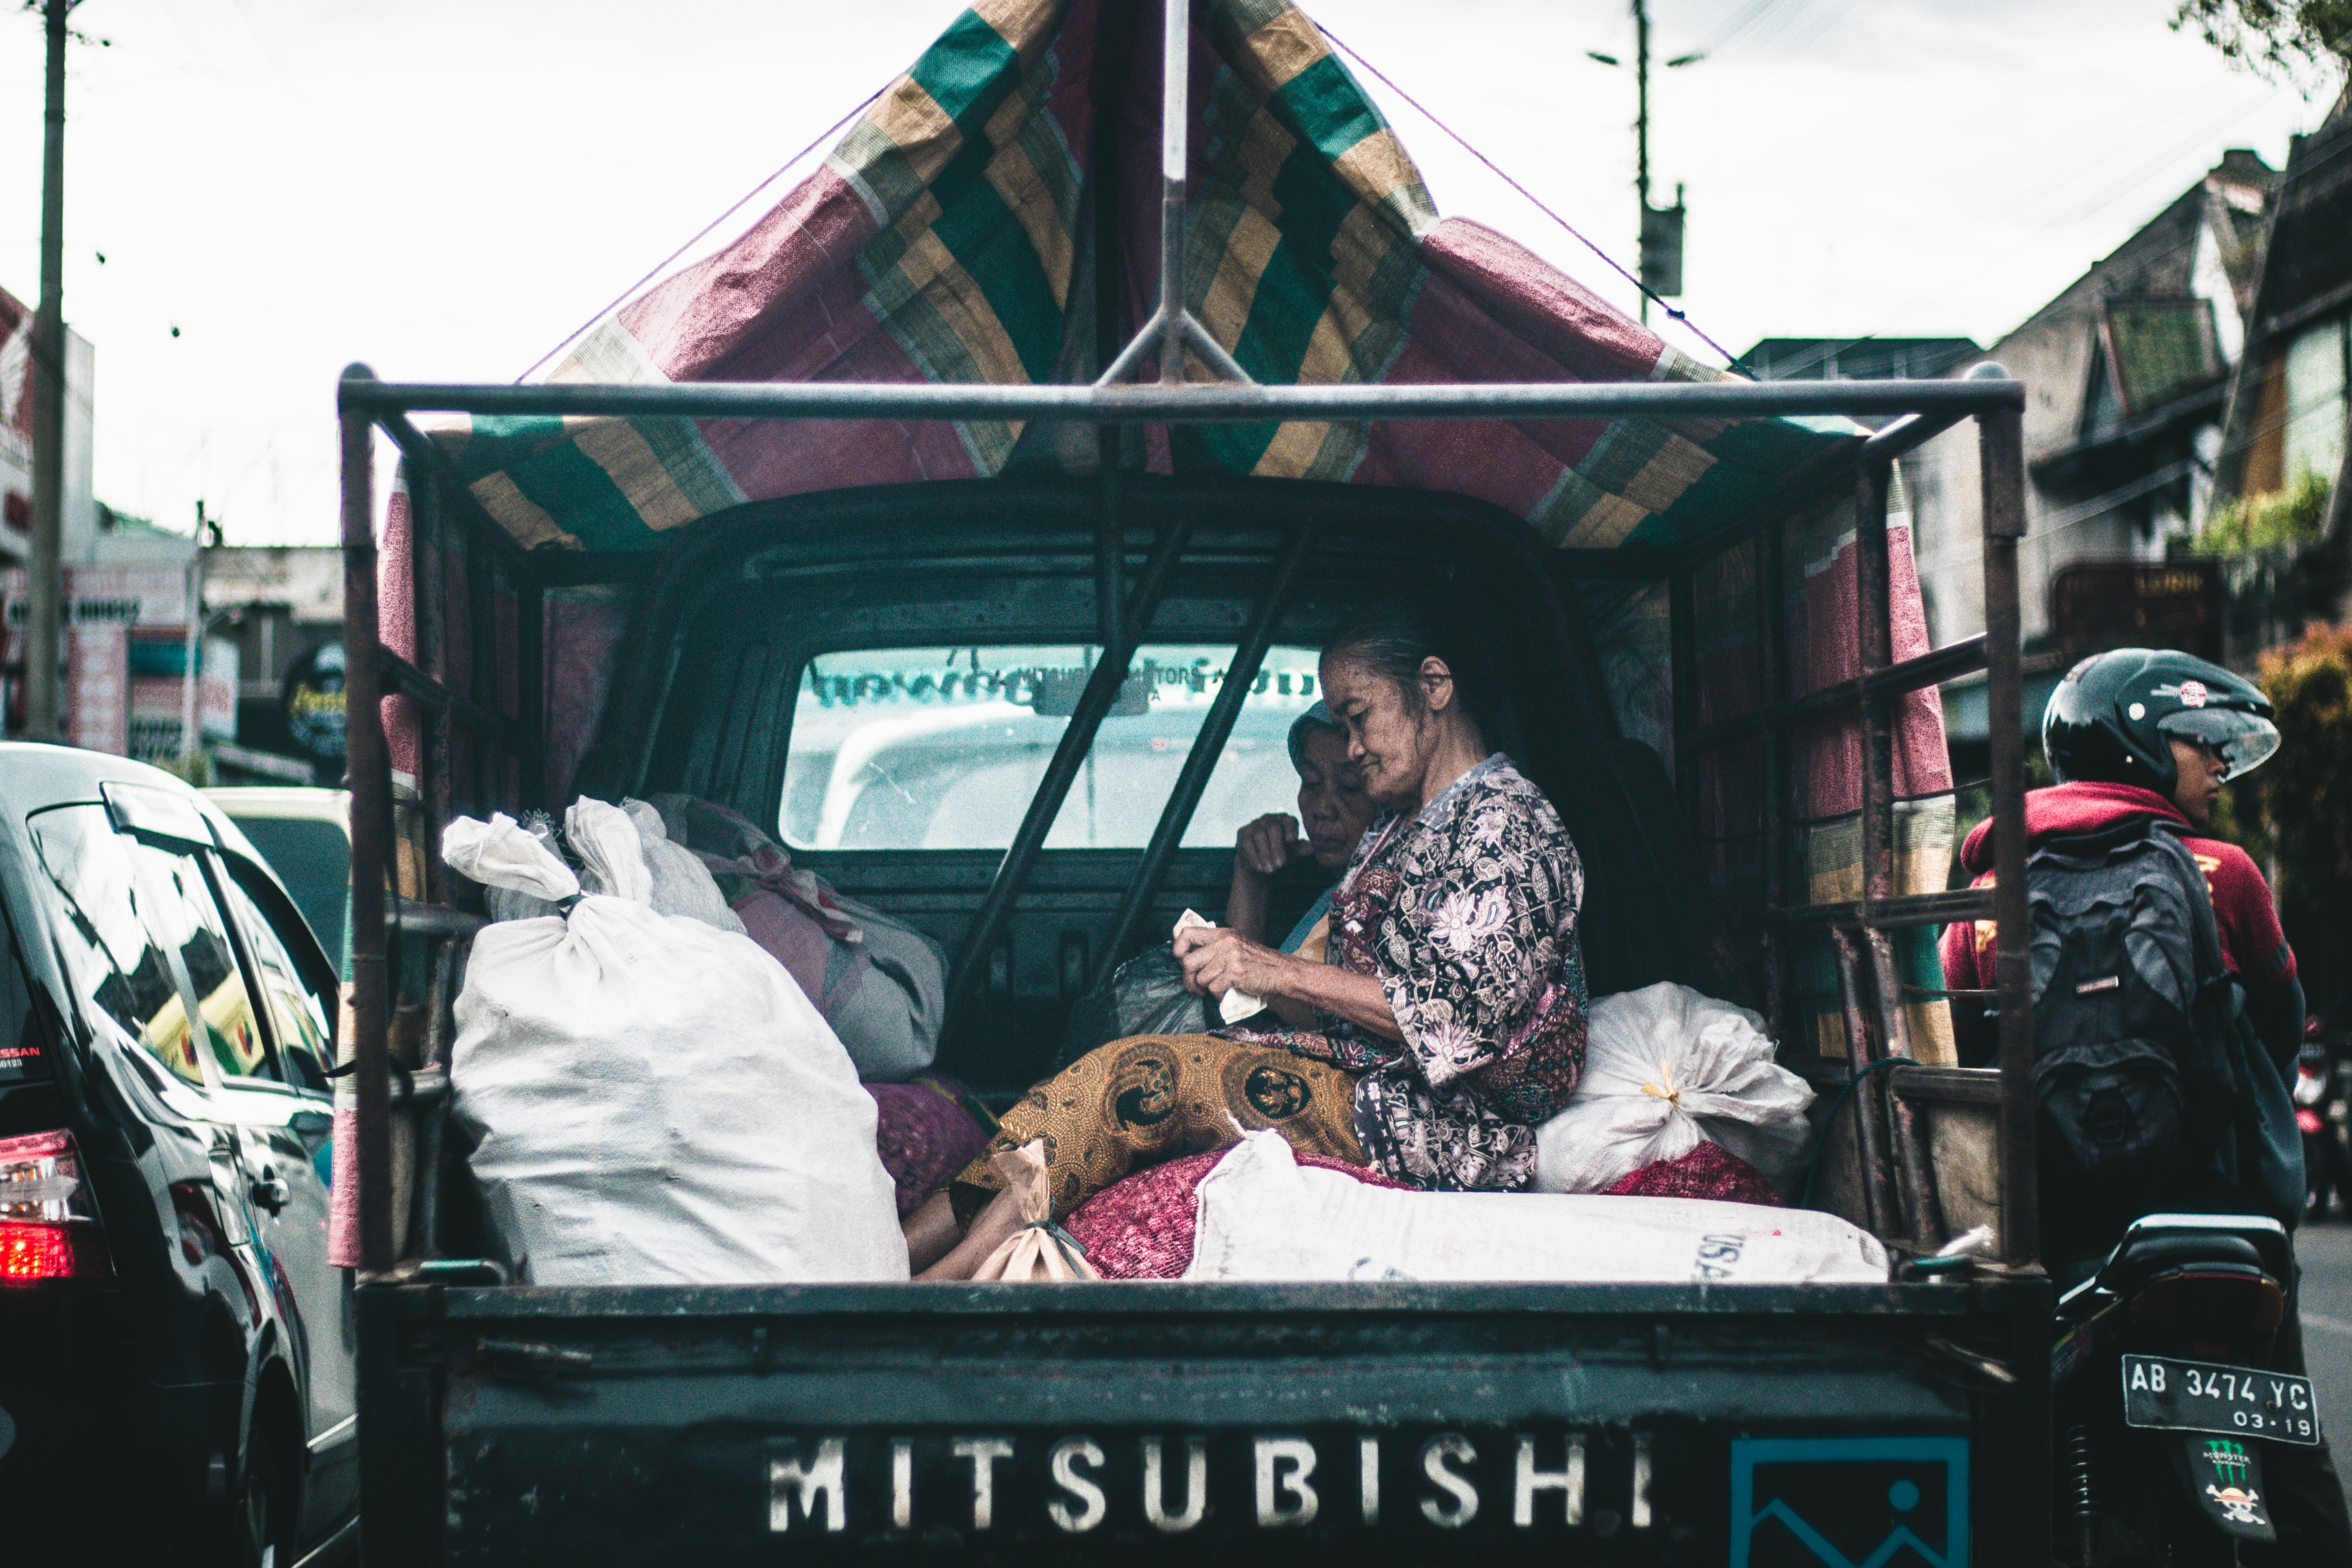 Two women sit on sacks in the back of a Mitsubishi truck